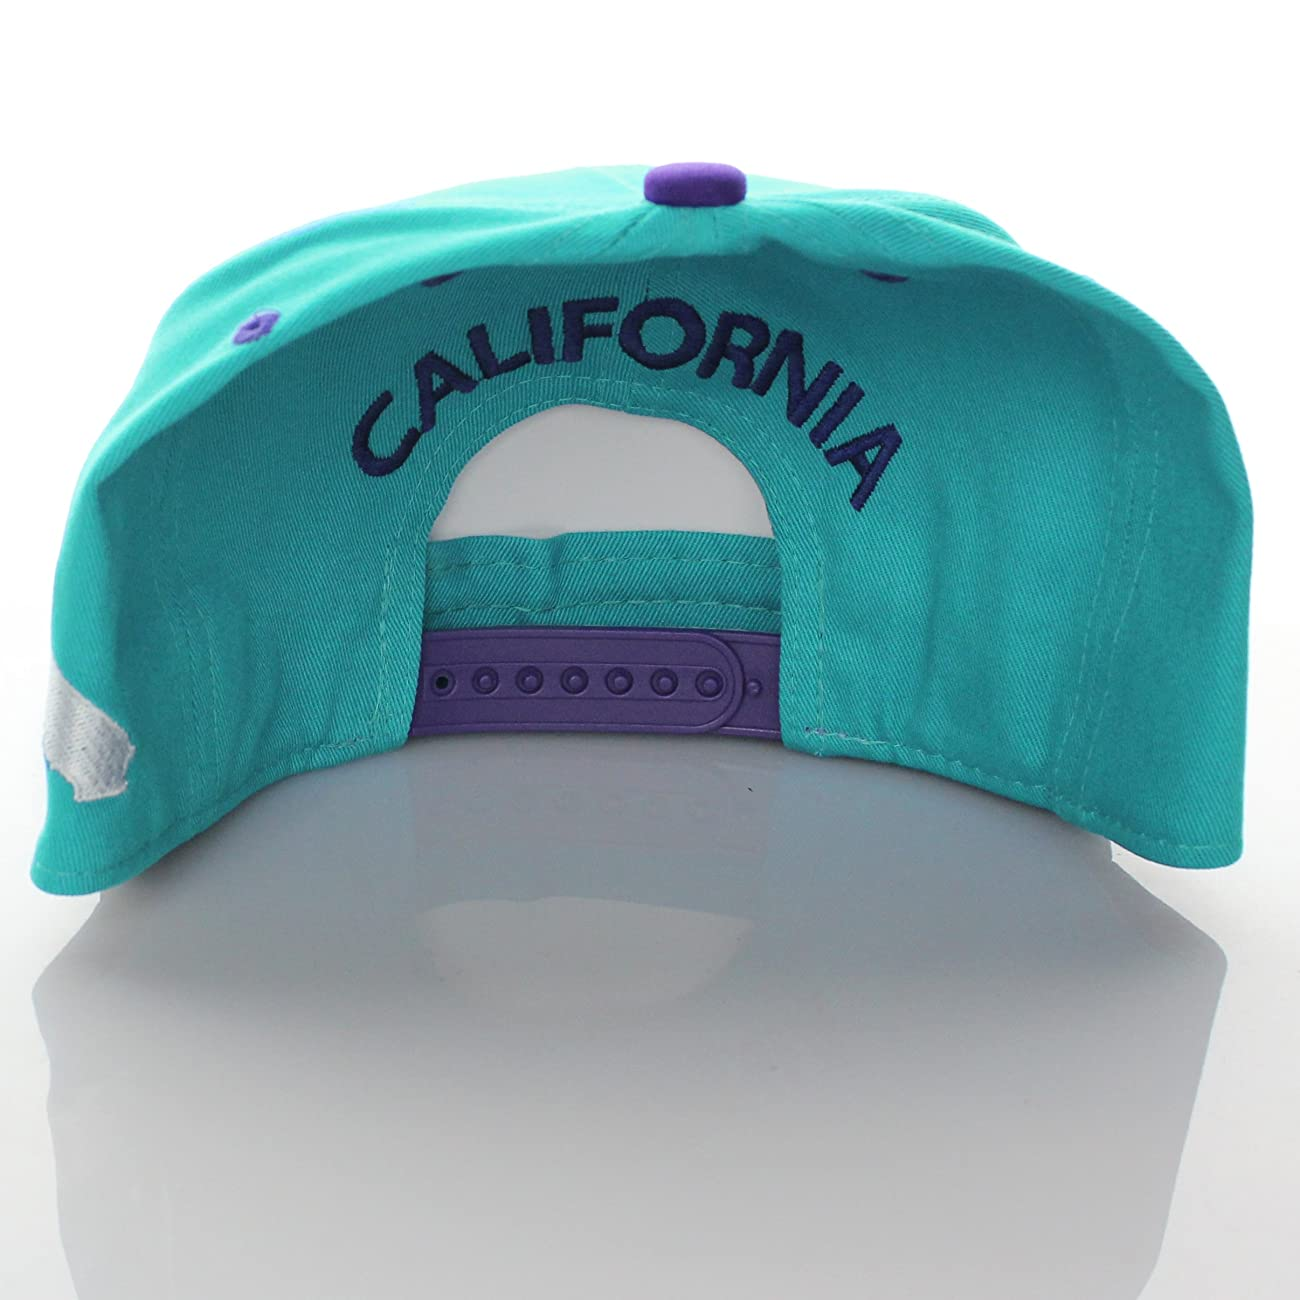 California Republic Flat Bill Vintage Style Snapback Hat Cap 3